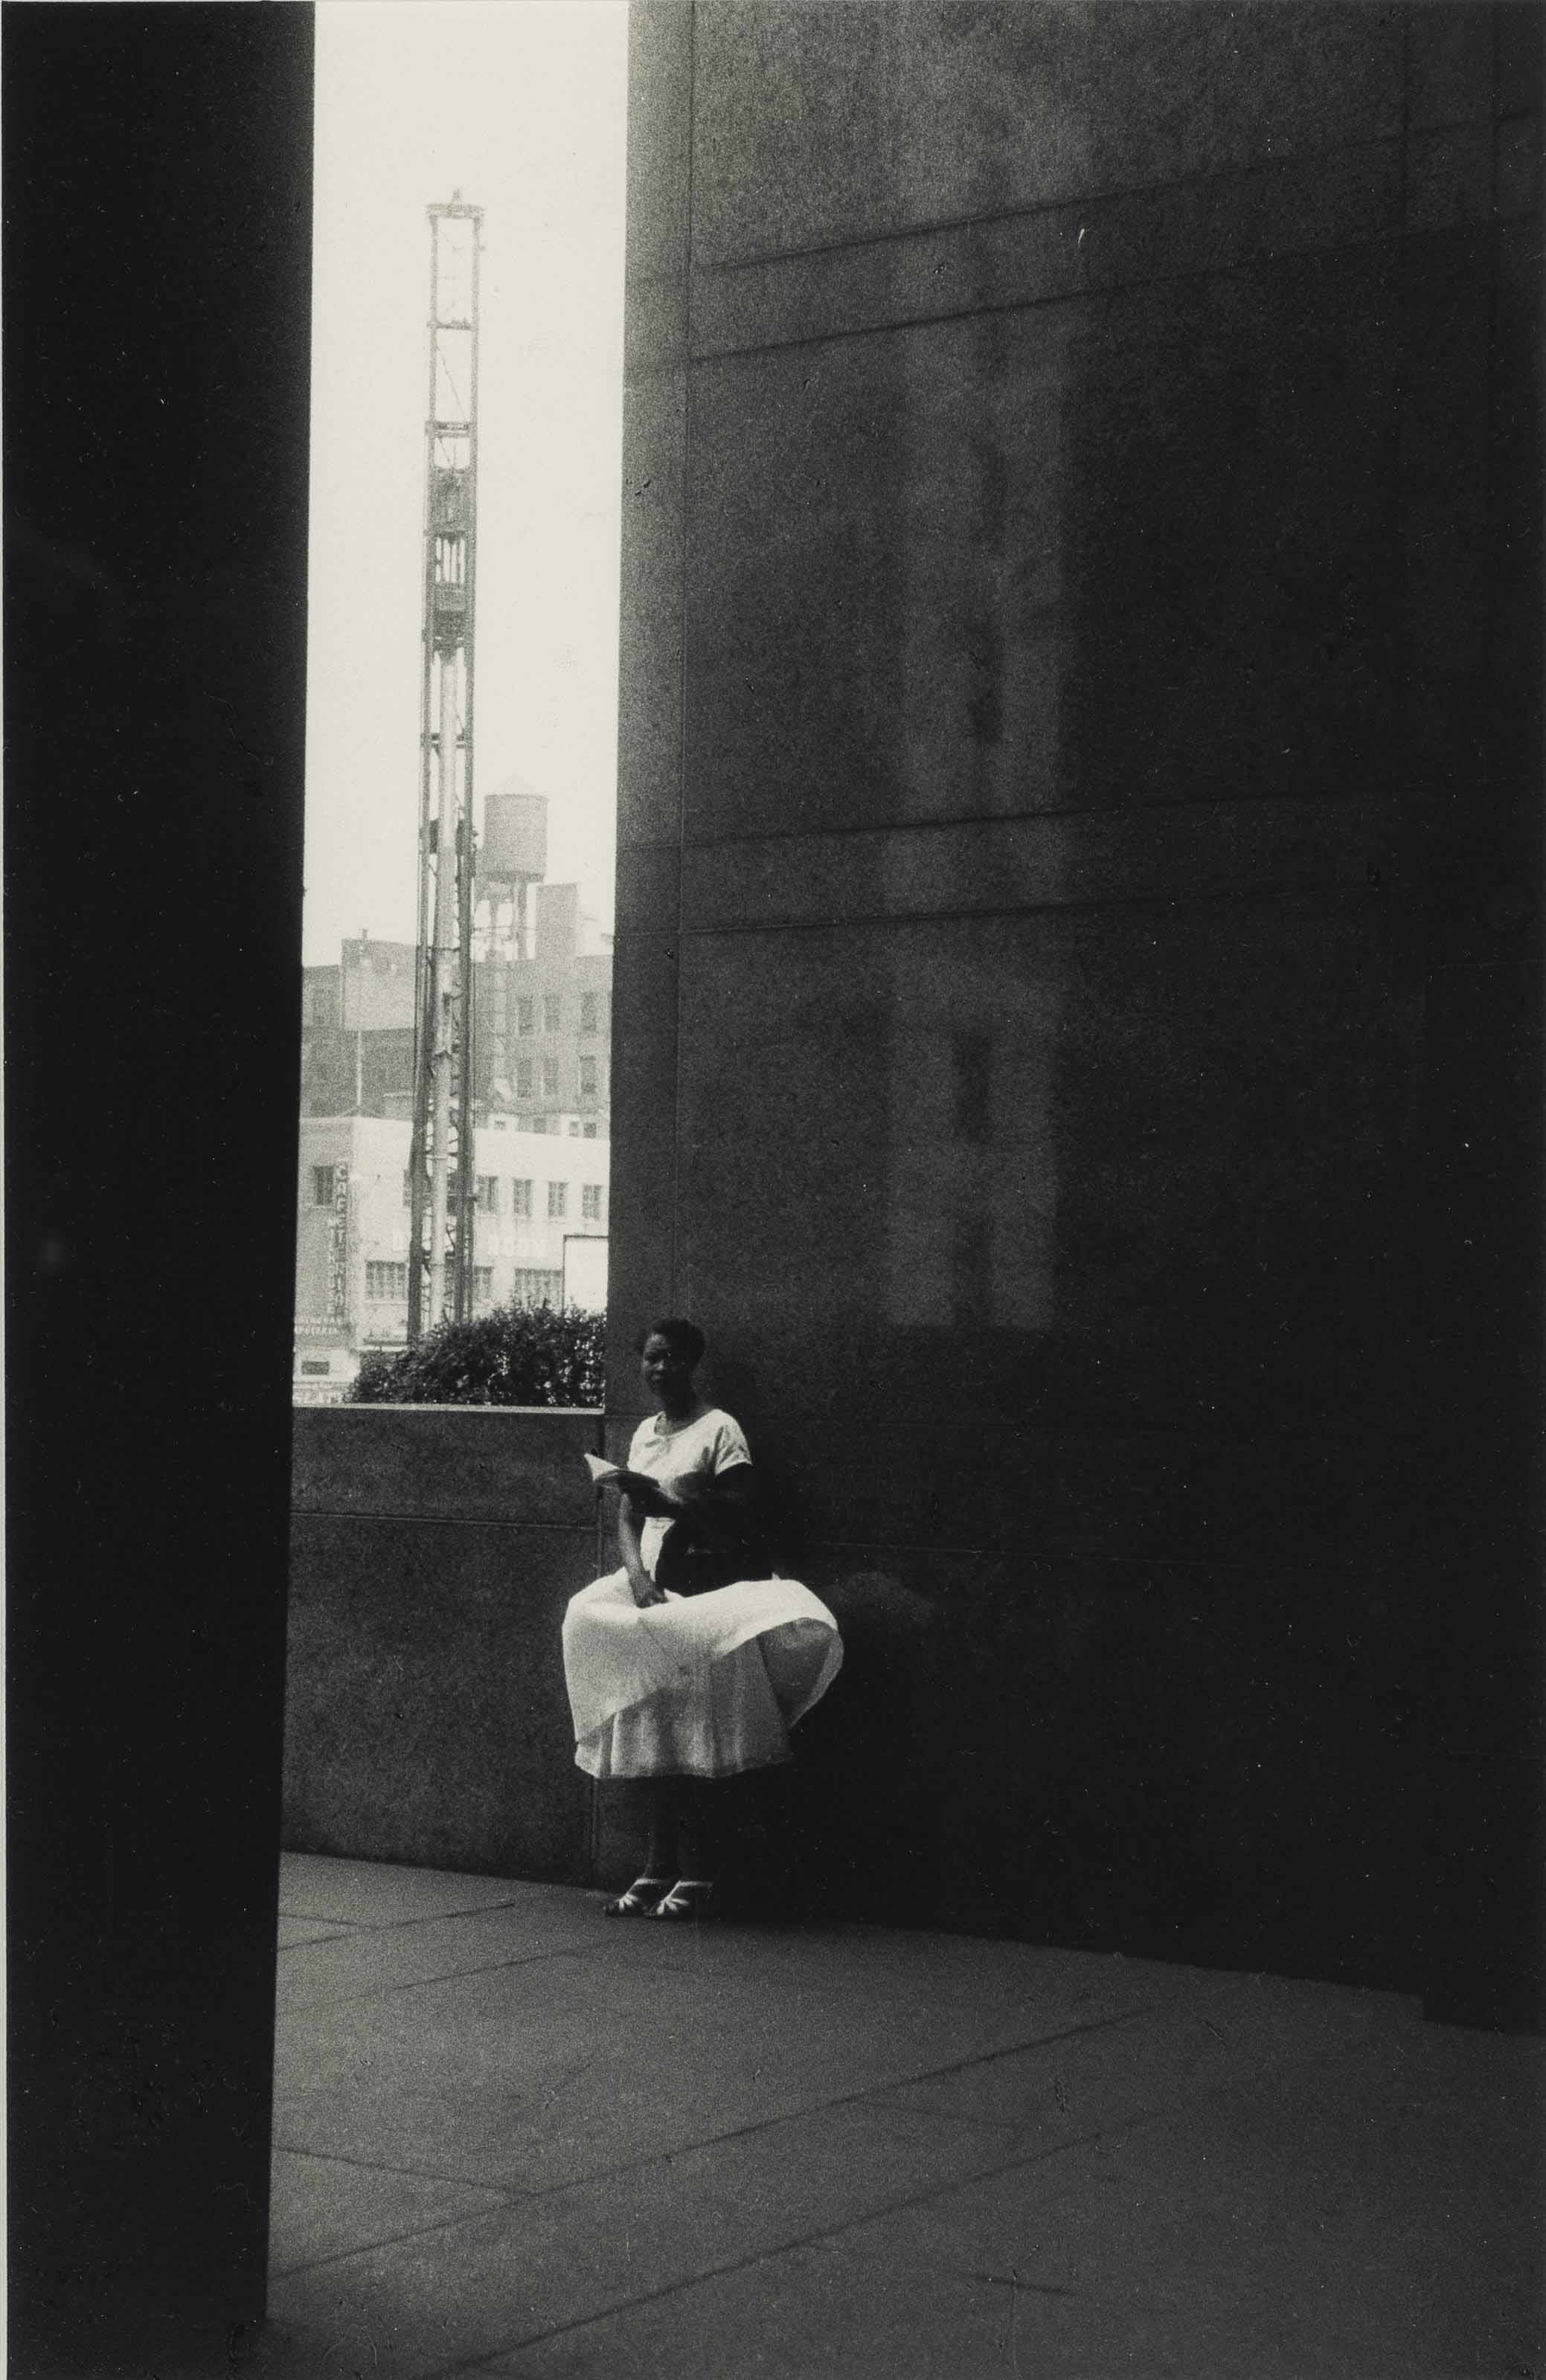 Untitled, 1950s